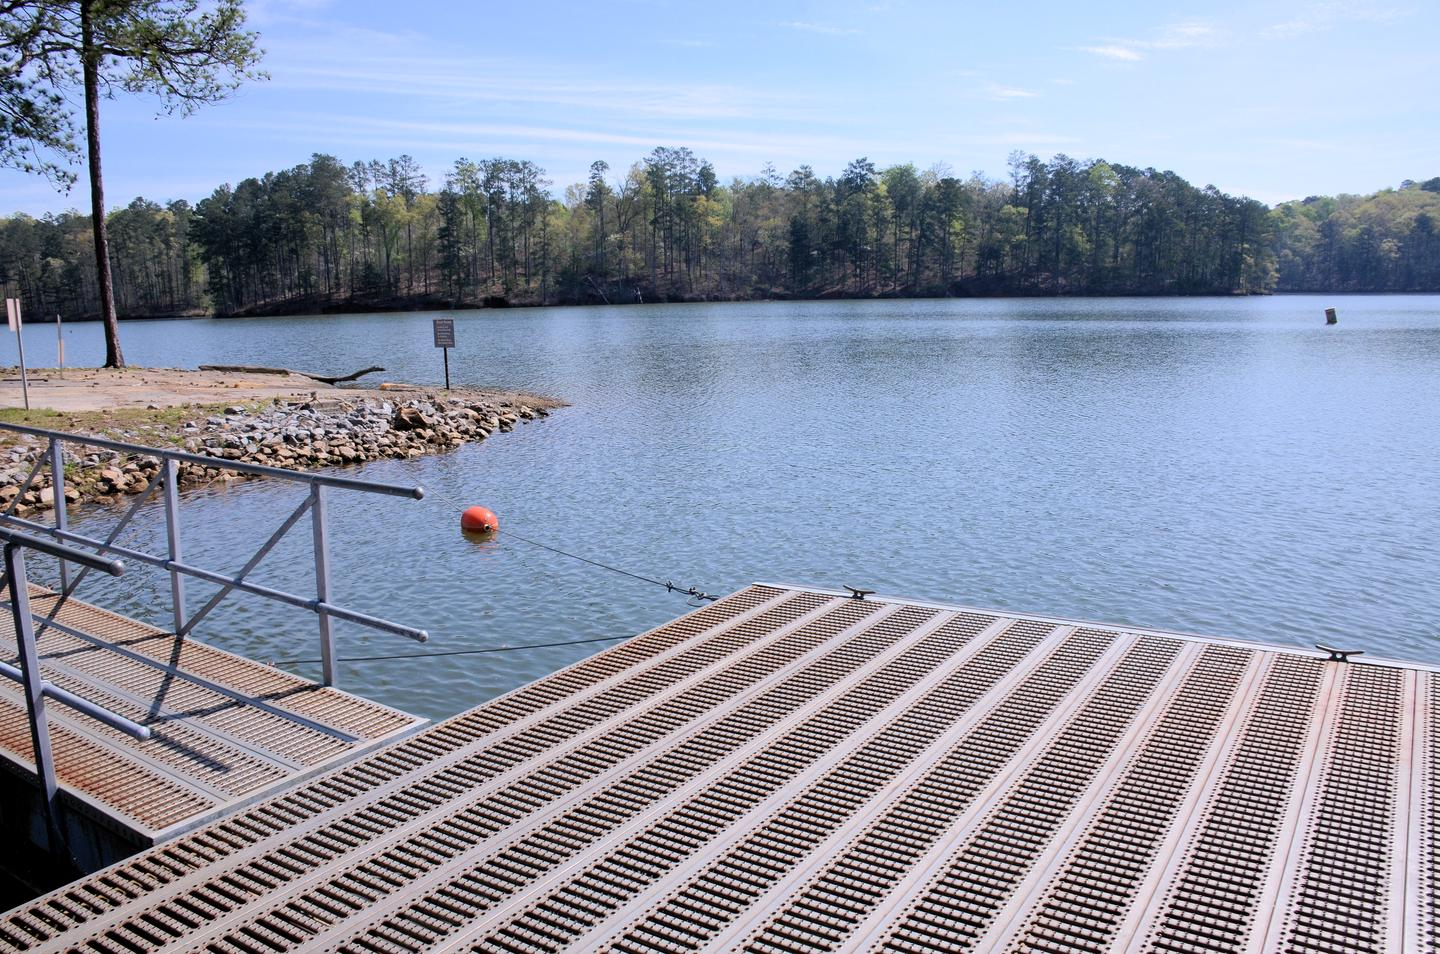 McKaskey Creek Campground Courtesy Dock and Boat Ramp